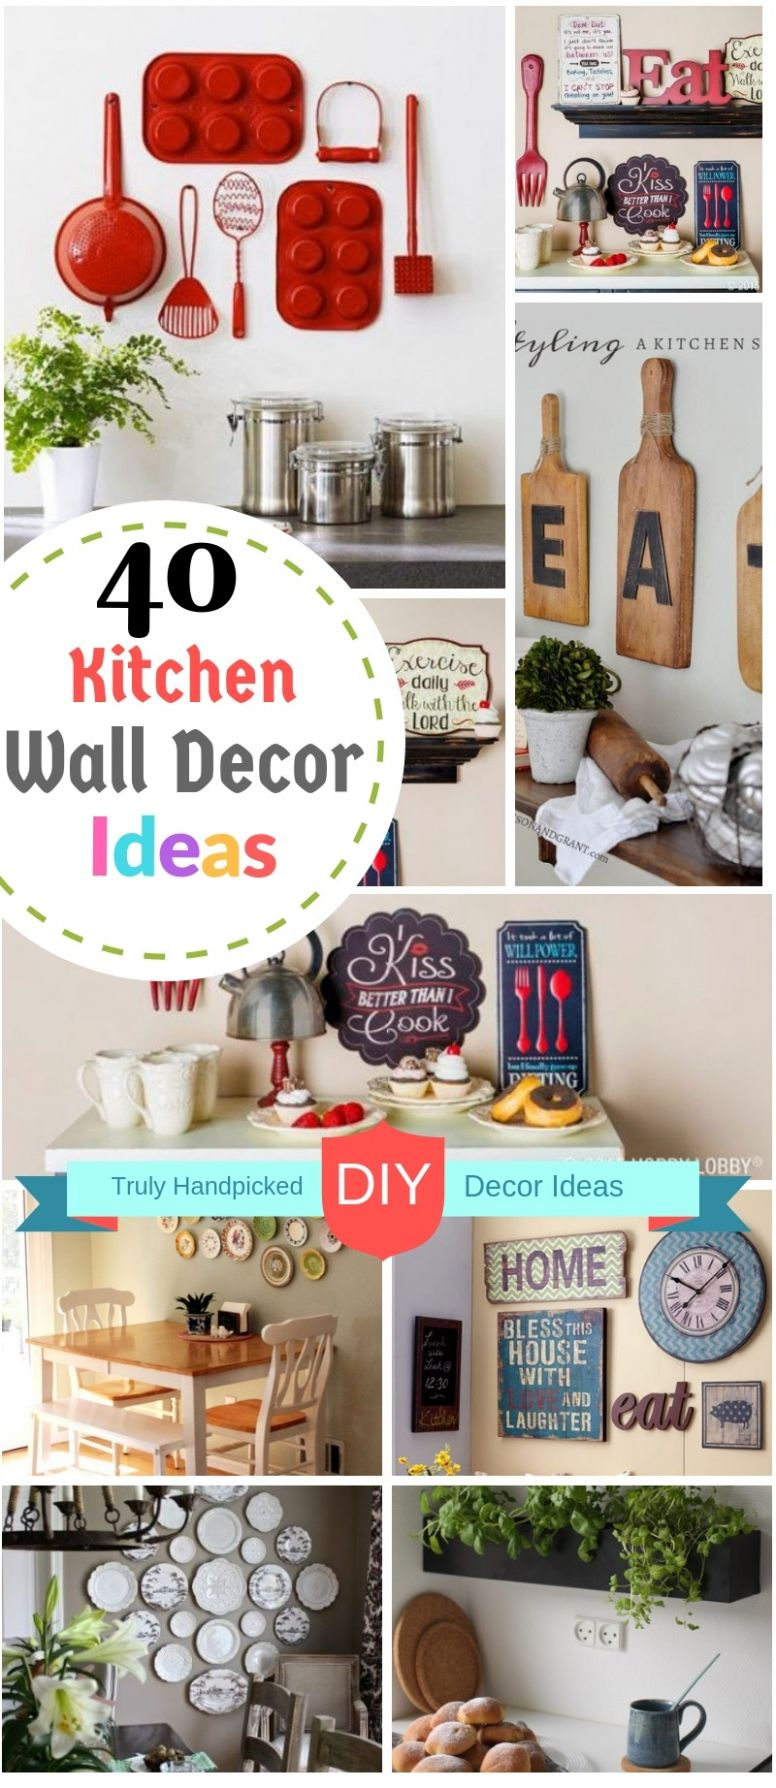 10 DIY Kitchen Wall Decor Ideas: Creative Farmhouse and Modern Decors